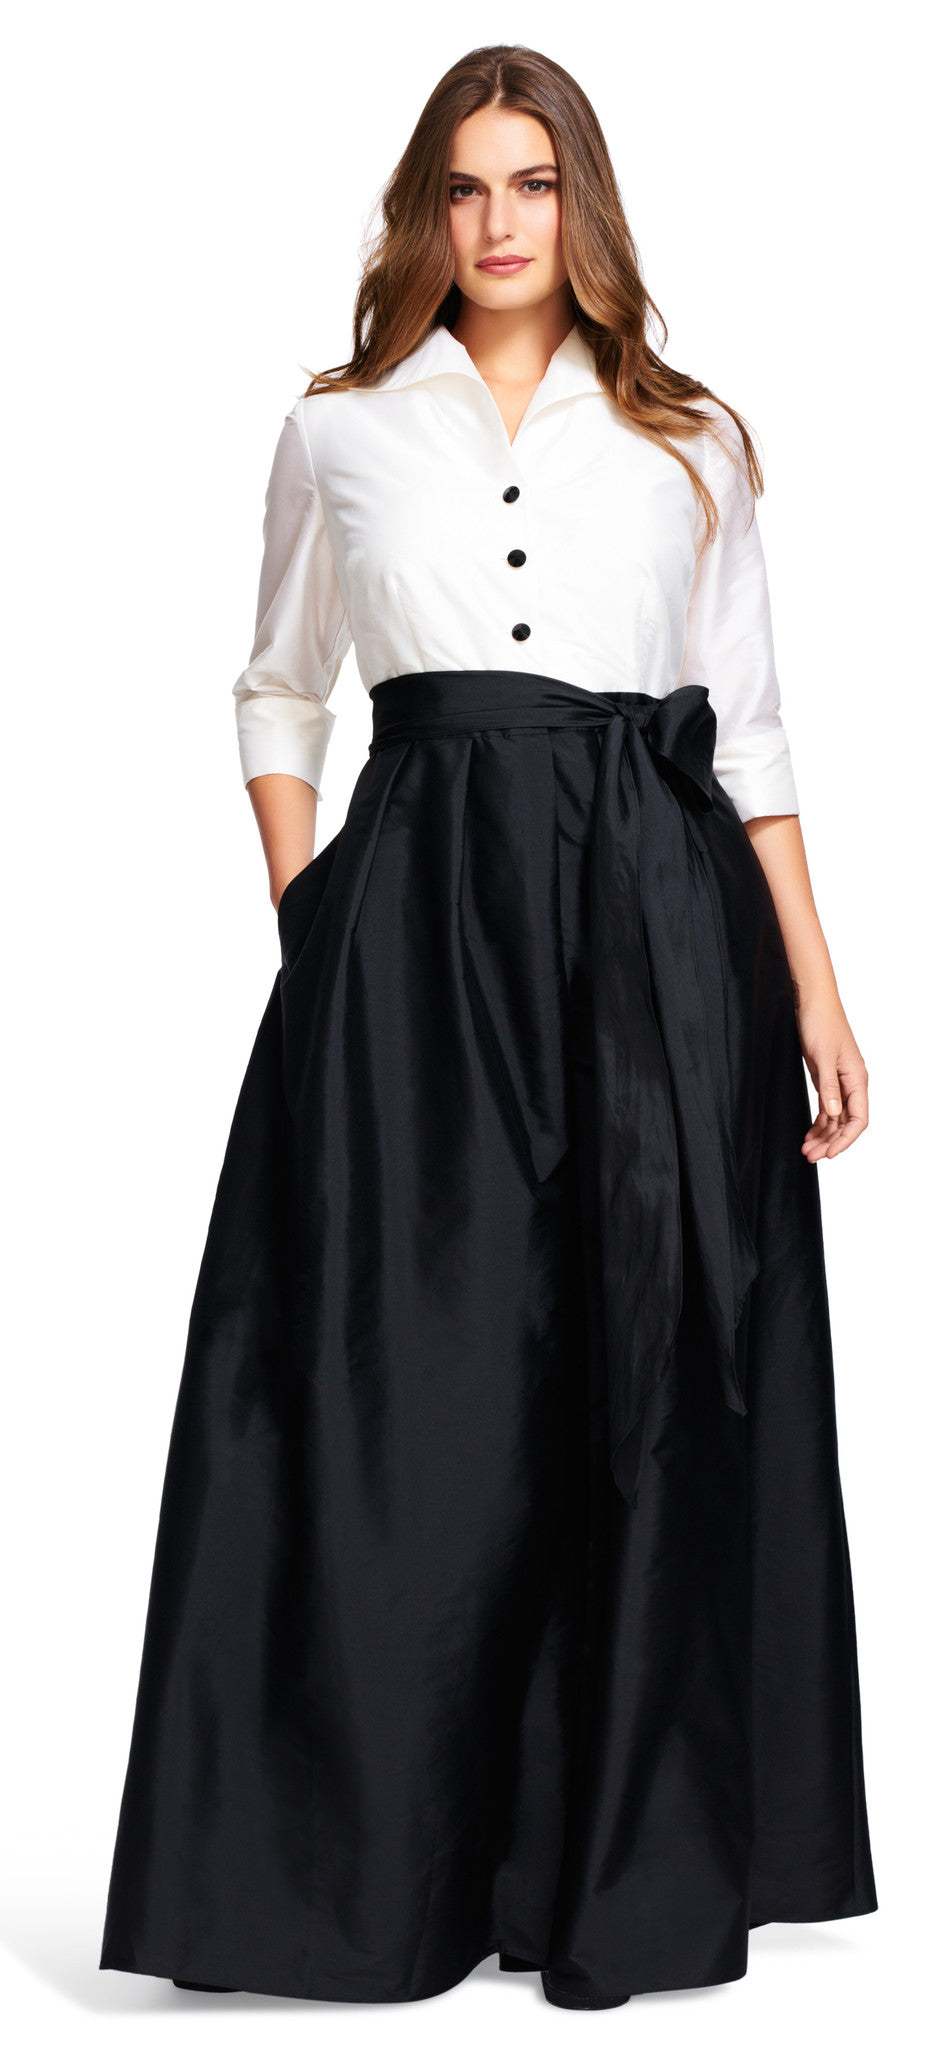 FOR SALE Black and White Maxi Three Quarter Sleeves V-Neck Dress by Adrianna Papell, Size 16